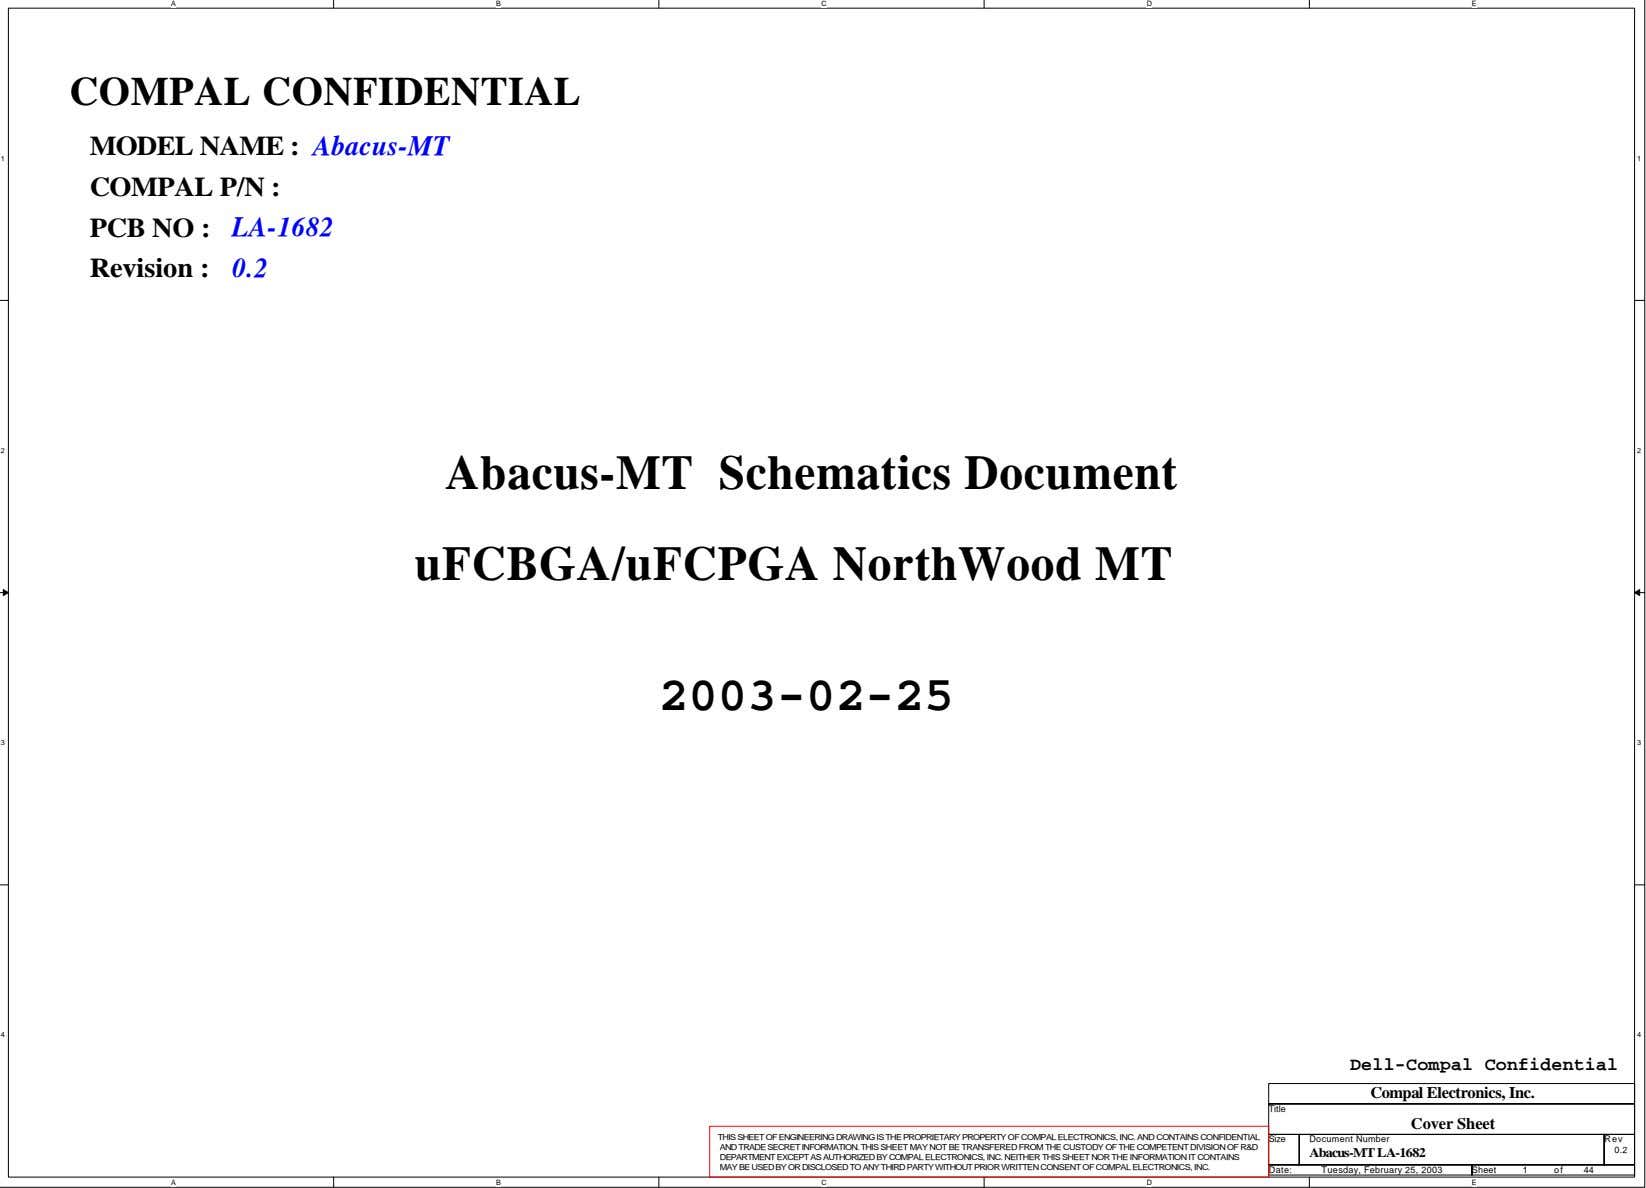 A B C D E COMPAL CONFIDENTIAL MODEL NAME : Abacus-MT 1 1 COMPAL P/N